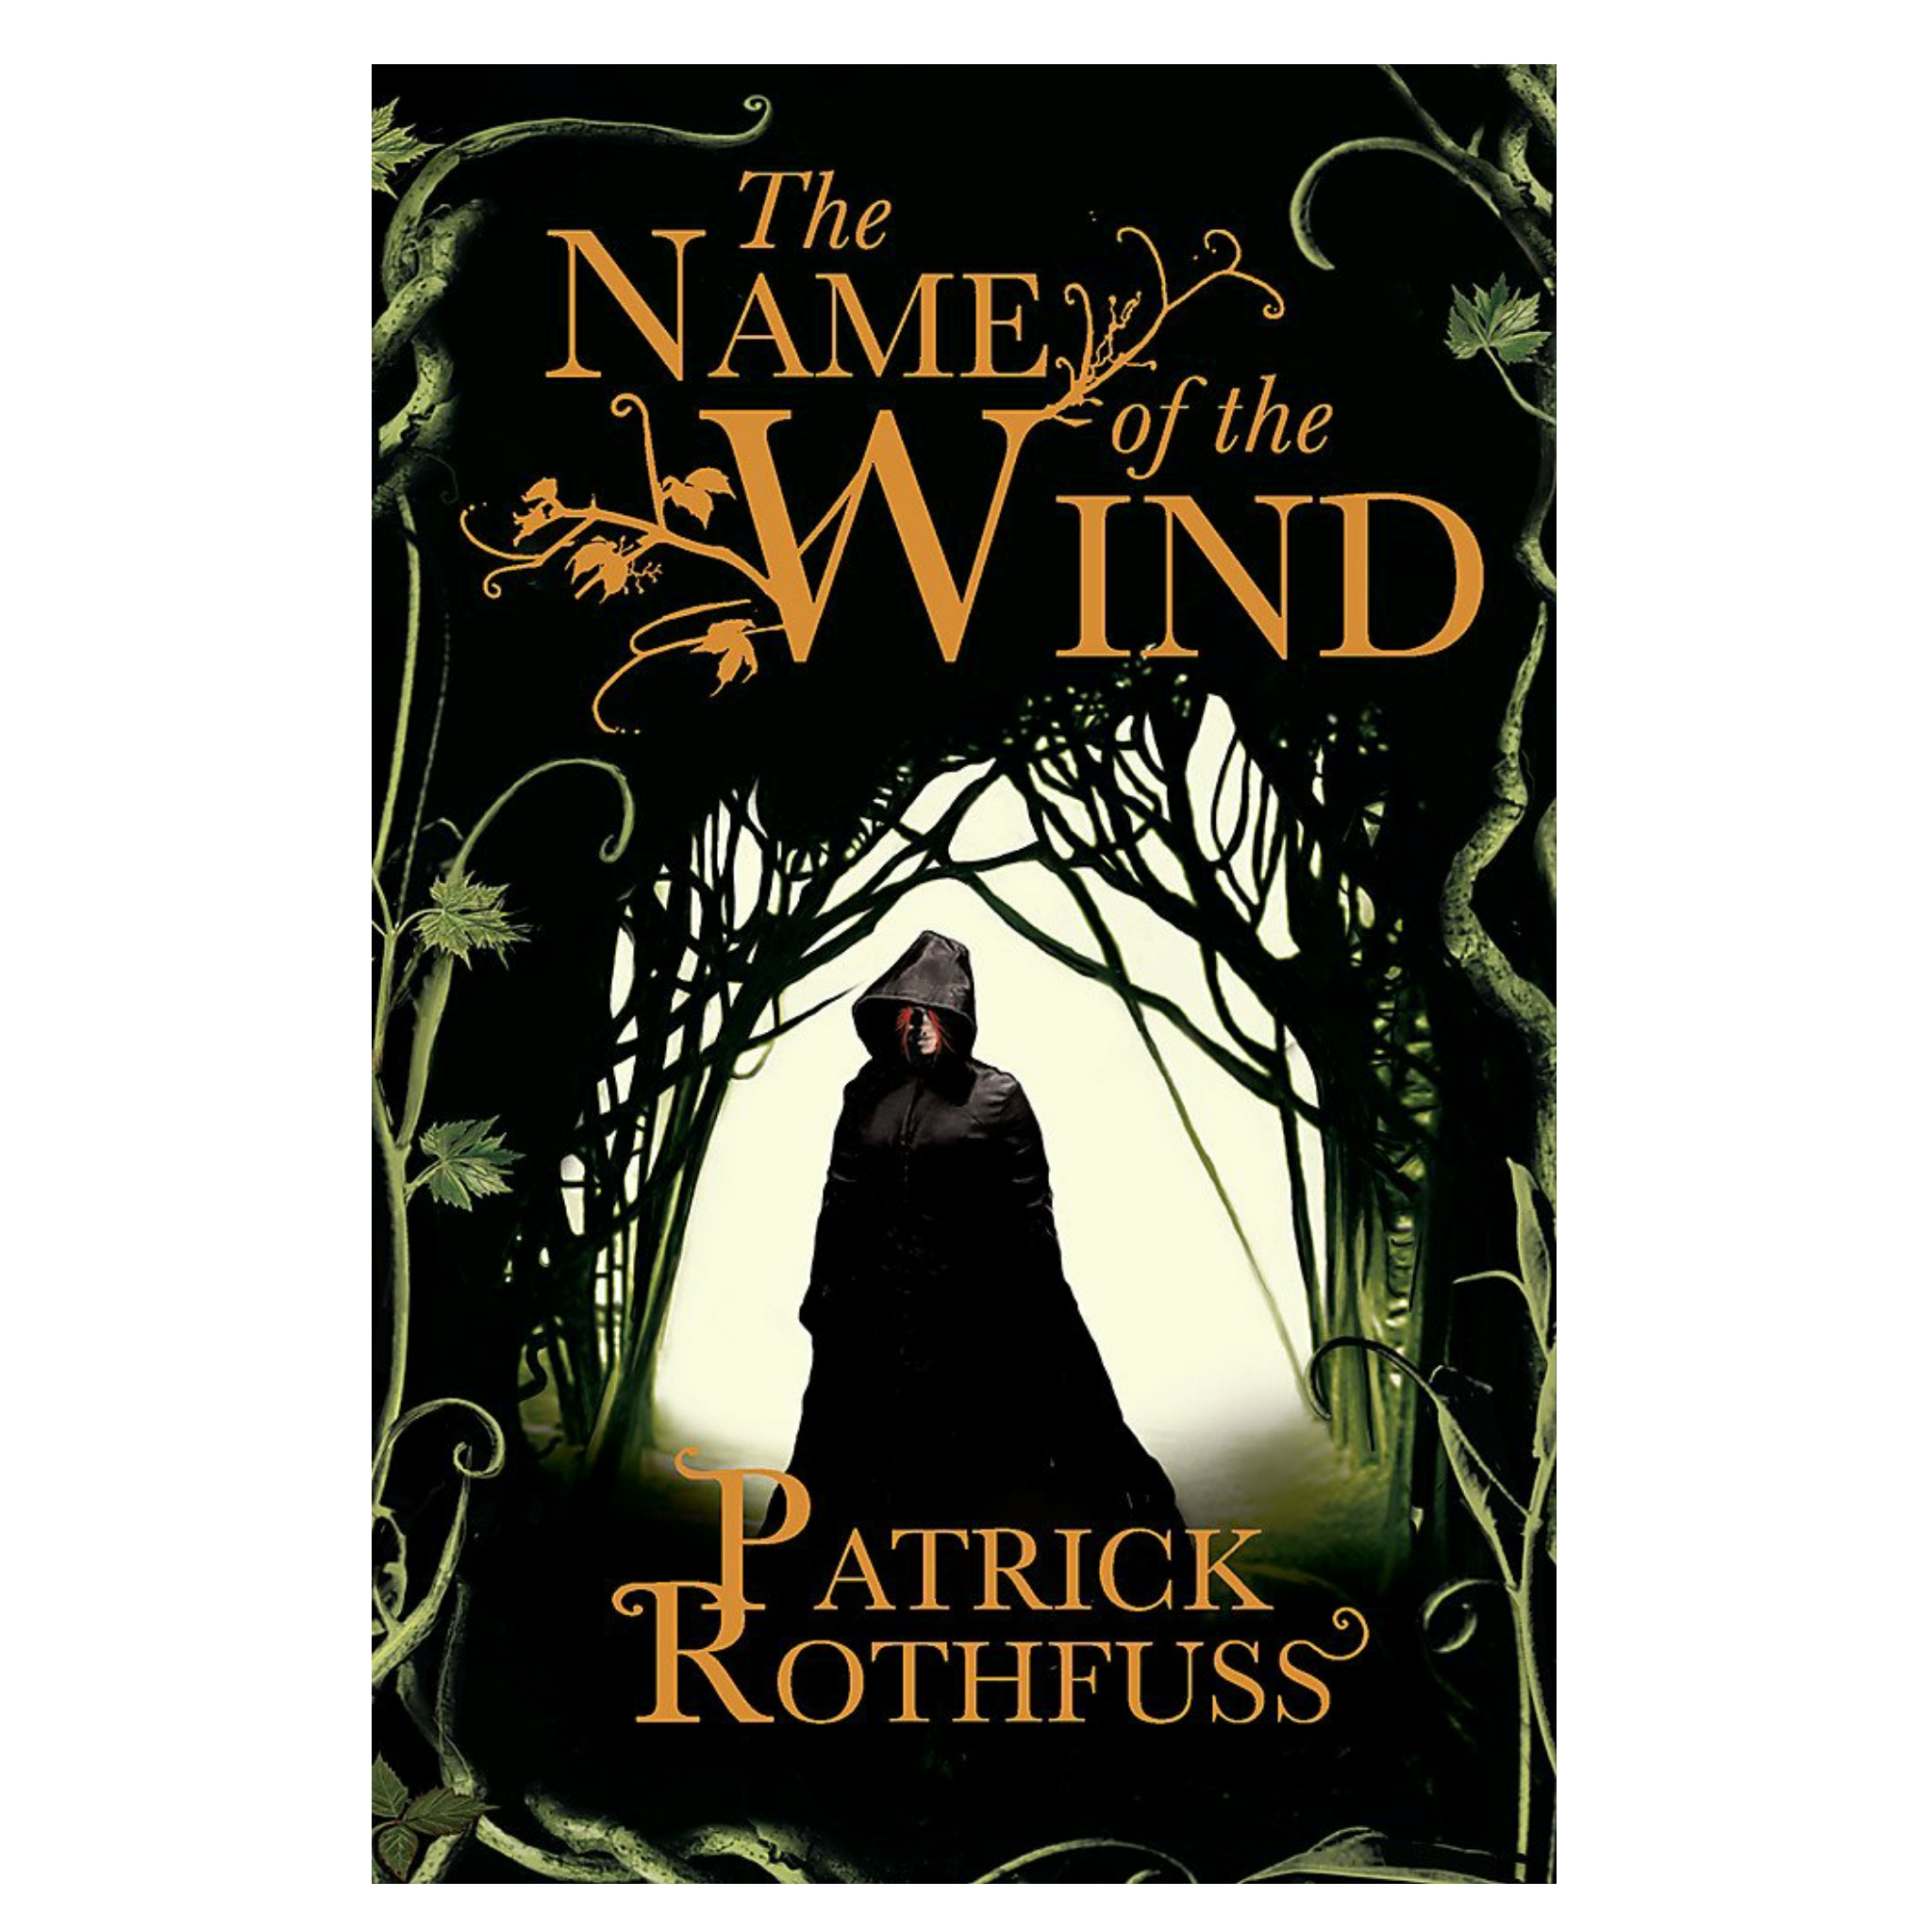 fantasy and adventure books - The Name of the Wind